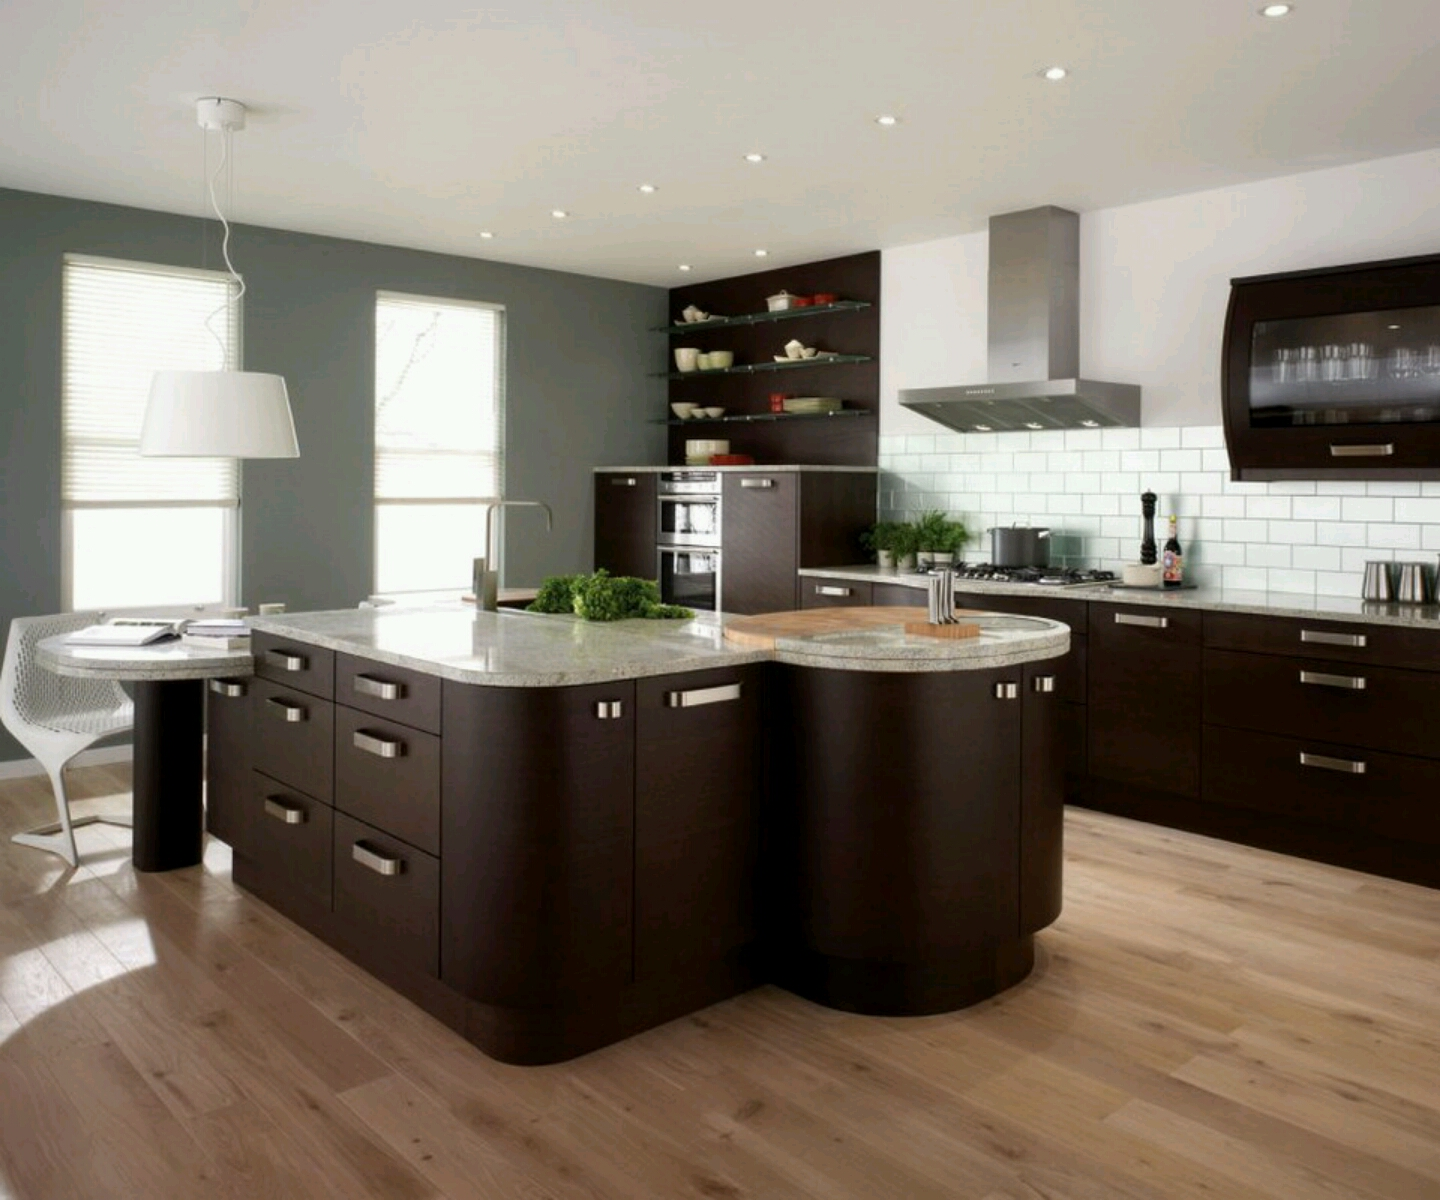 Modern Kitchen Design Ideas on wooden floor